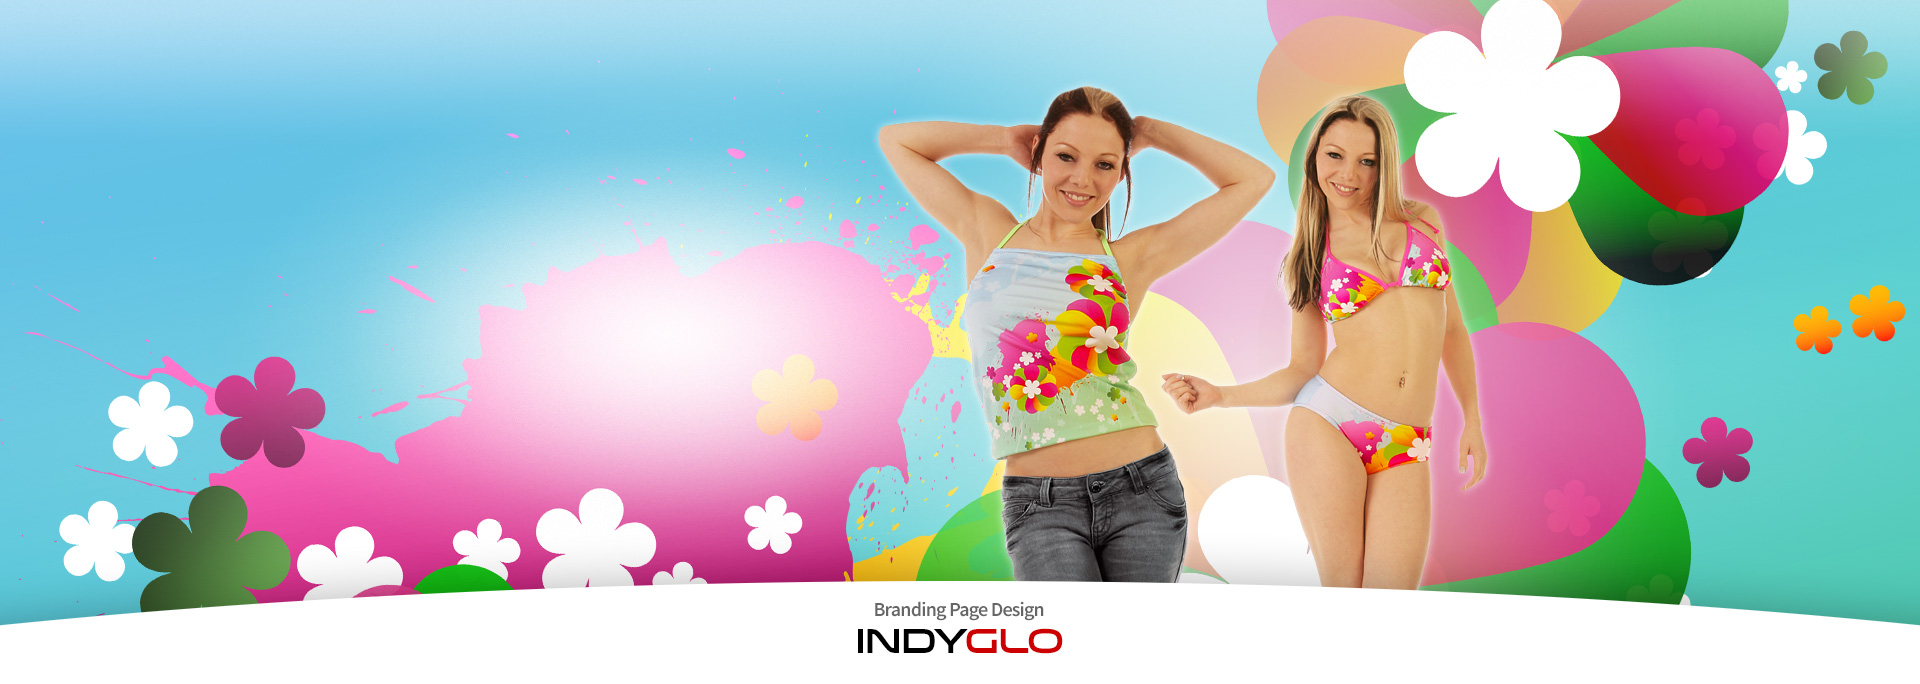 Indyglo Brand Page Backdrop - Hippy Love